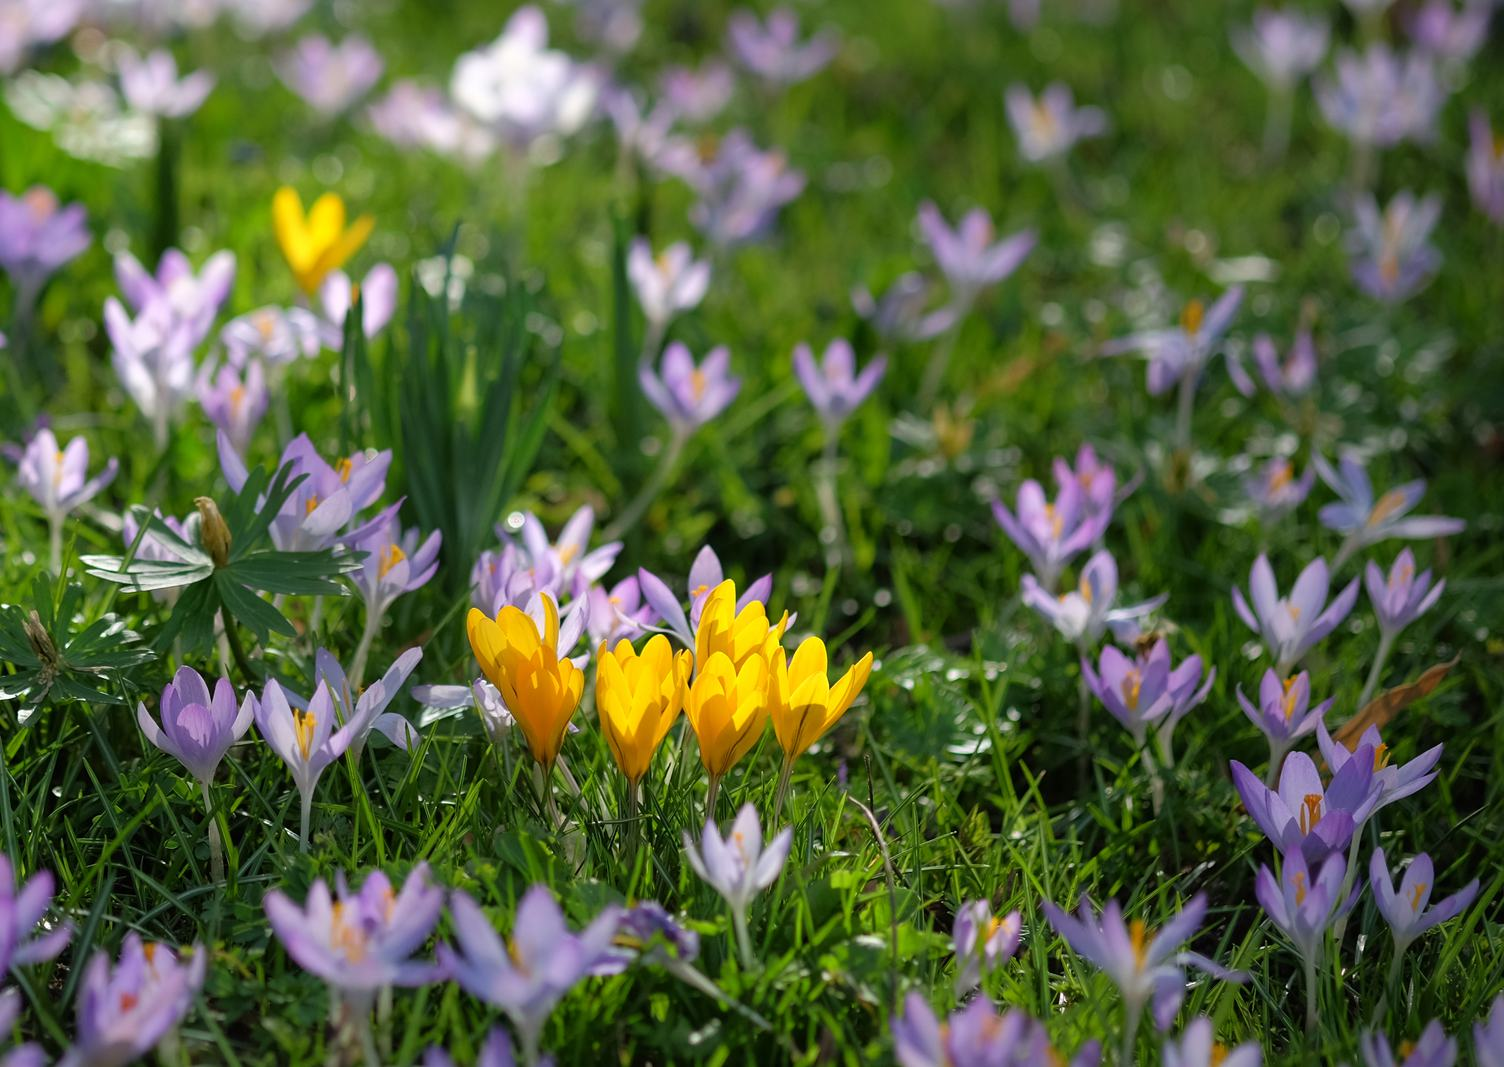 A Field of Purple and Yellow Crocus